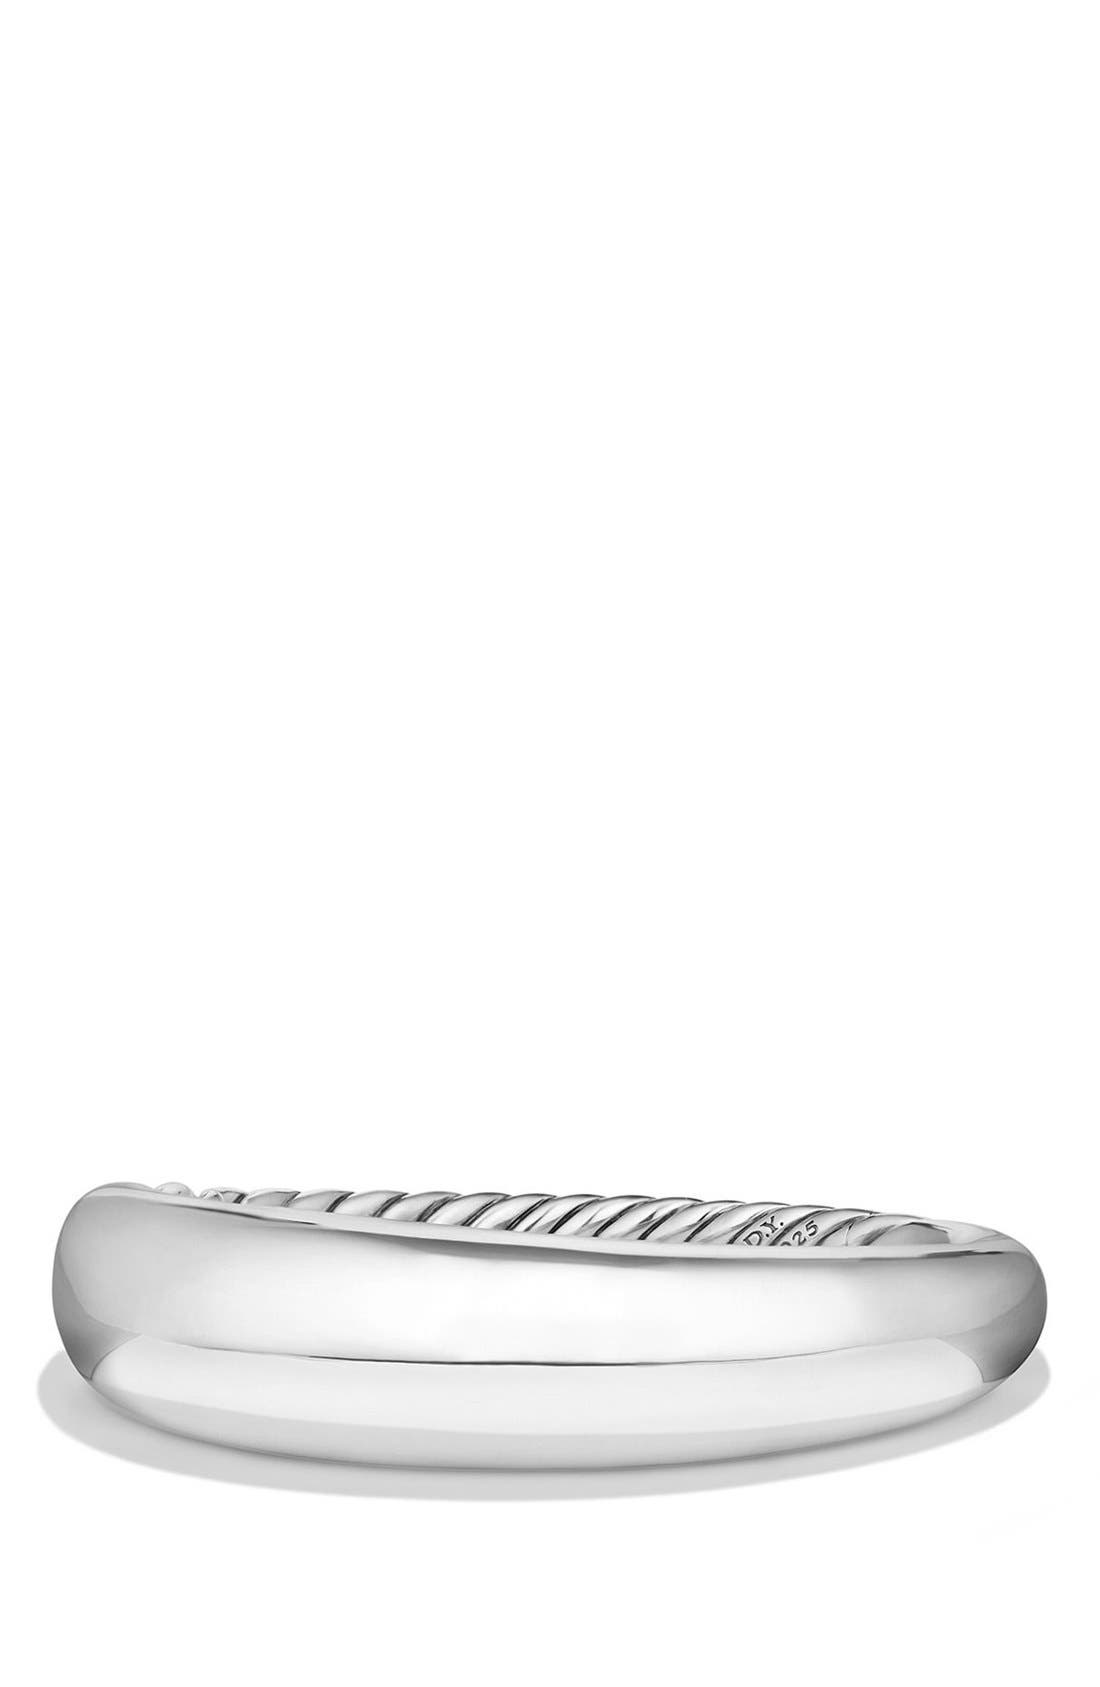 Alternate Image 1 Selected - David Yurman 'Pure Form' Large Sterling Silver Bracelet